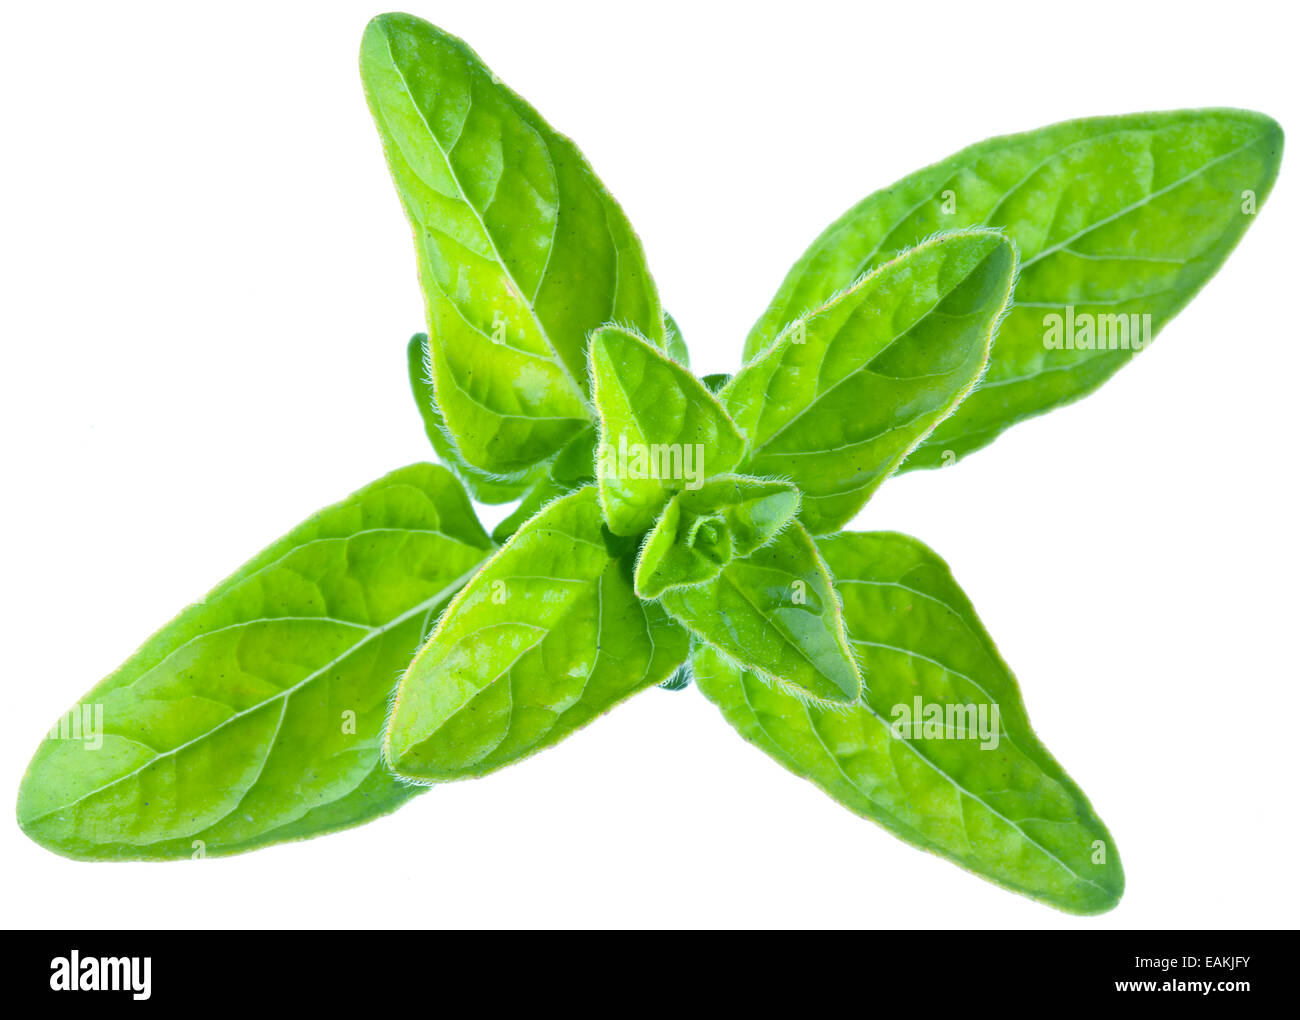 Green fresh marjoram leaves on a white background. Clipping path. - Stock Image